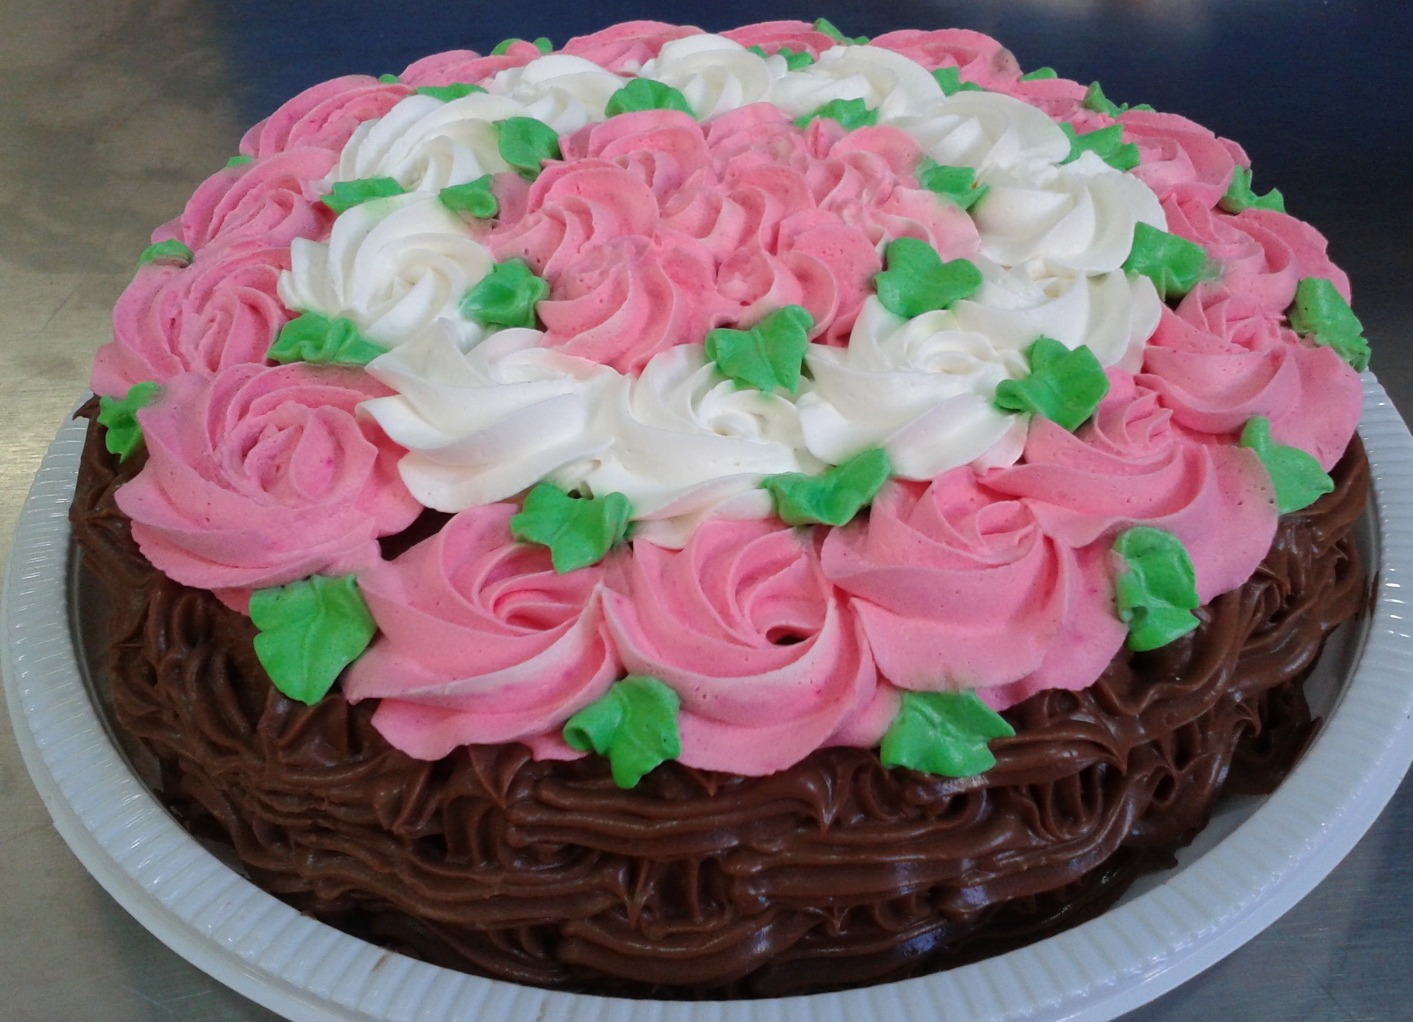 BOLO TRUFADO COM ROSA DE CHANTILLY_edited